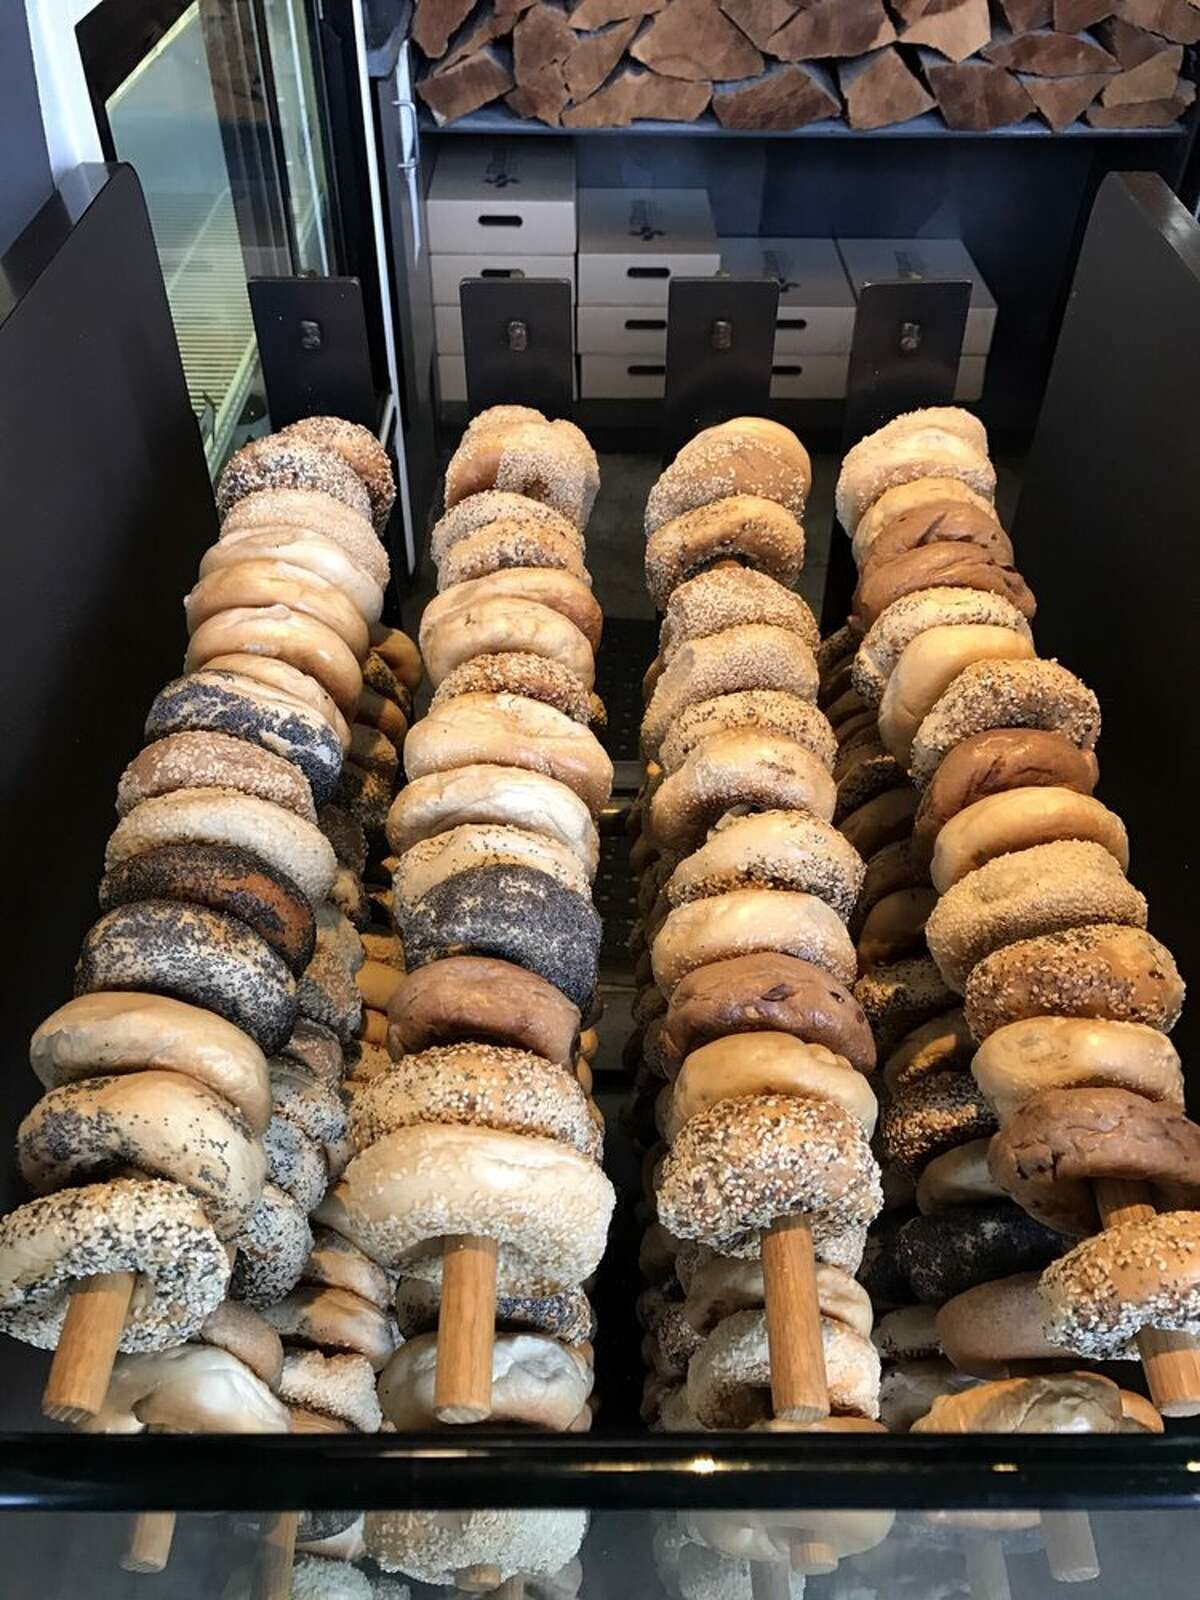 Nestled in three outposts across Seattle Center, Capitol Hill and Wallingford, Eltana is a local counter-serve chain featuring wood-fired bagels, sandwiches and Middle Eastern grub. According to one raving Google review, Eltana bagels are